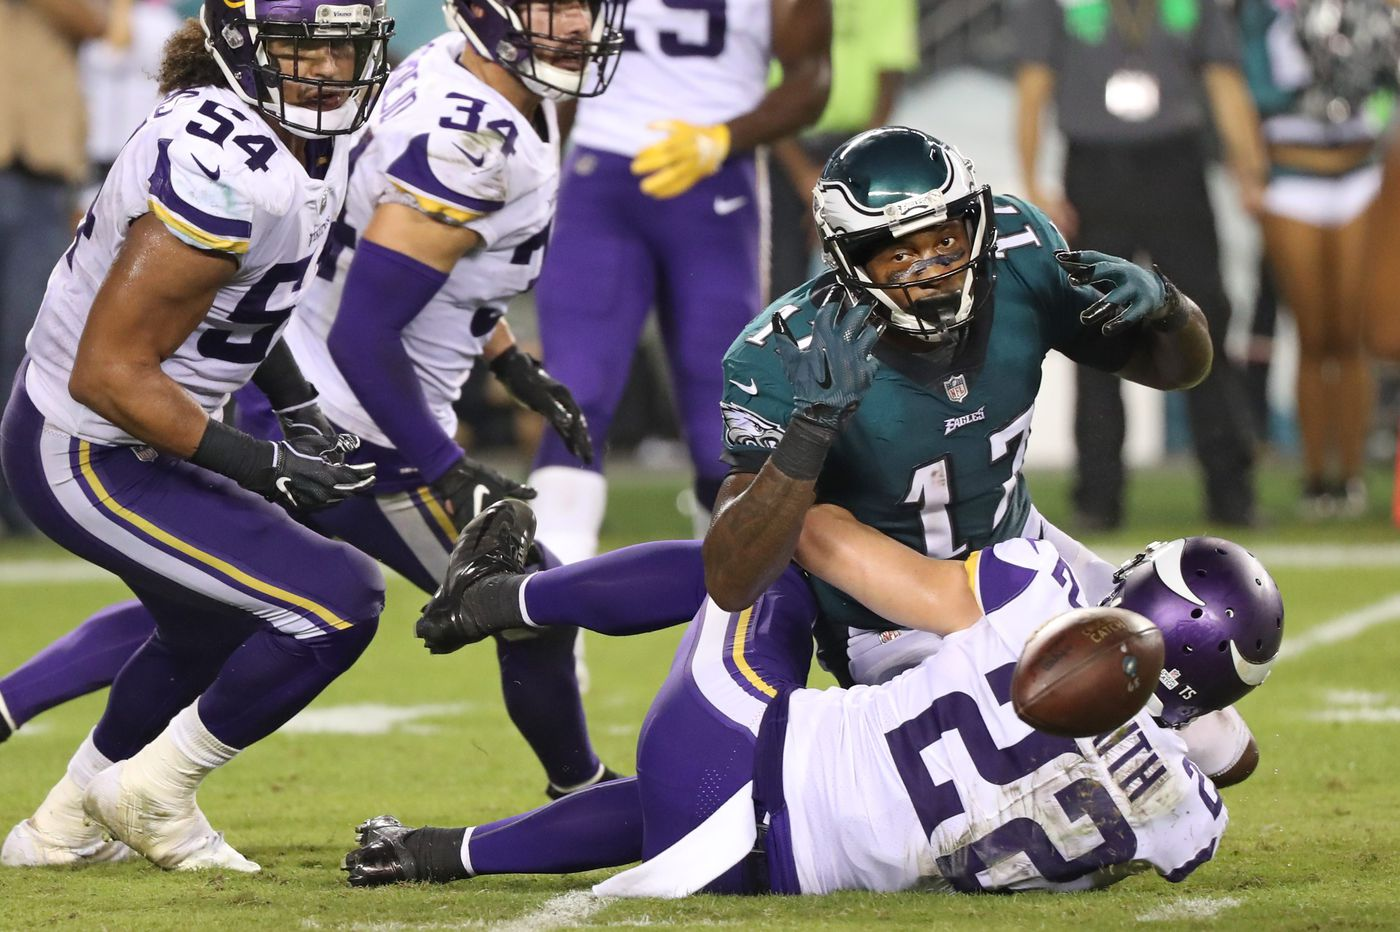 After loss to Vikings, Eagles' Super Bowl hangover gets worse | Marcus Hayes